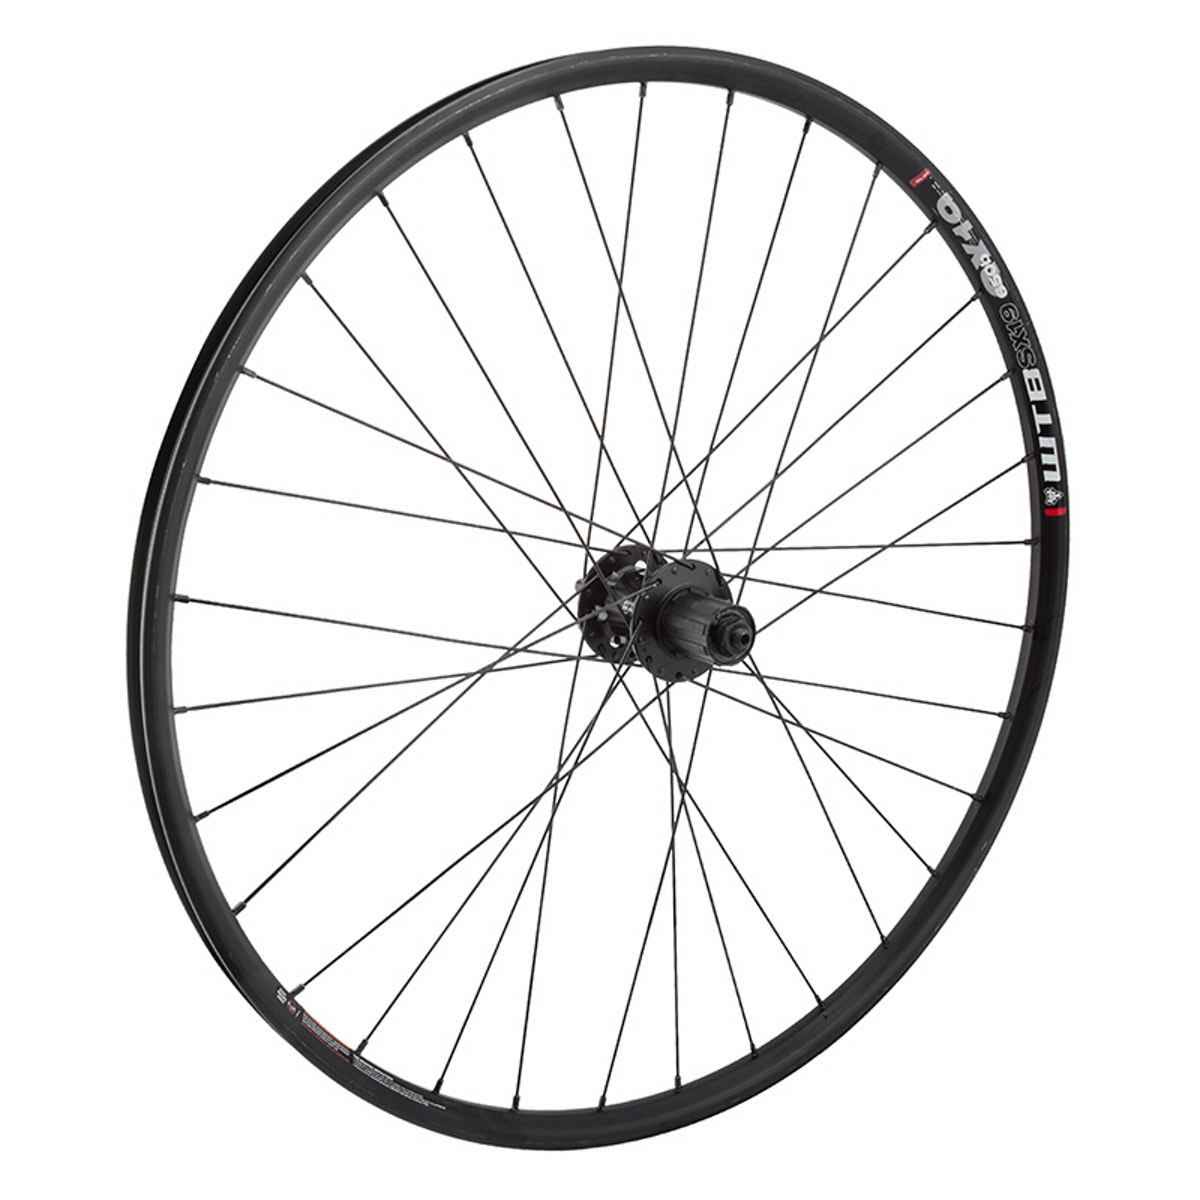 "Wheel Masters 27.5"" Alloy Mountain Disc Double Wall - RR 27.5 584x19 WTB SX19"